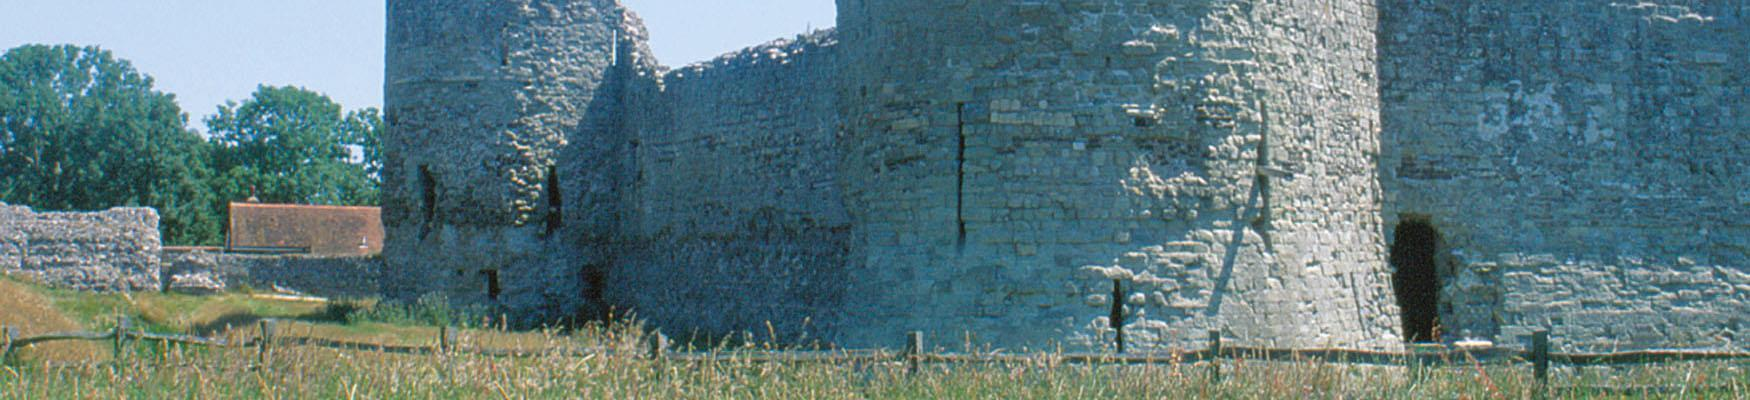 Pevensey Castle from outside